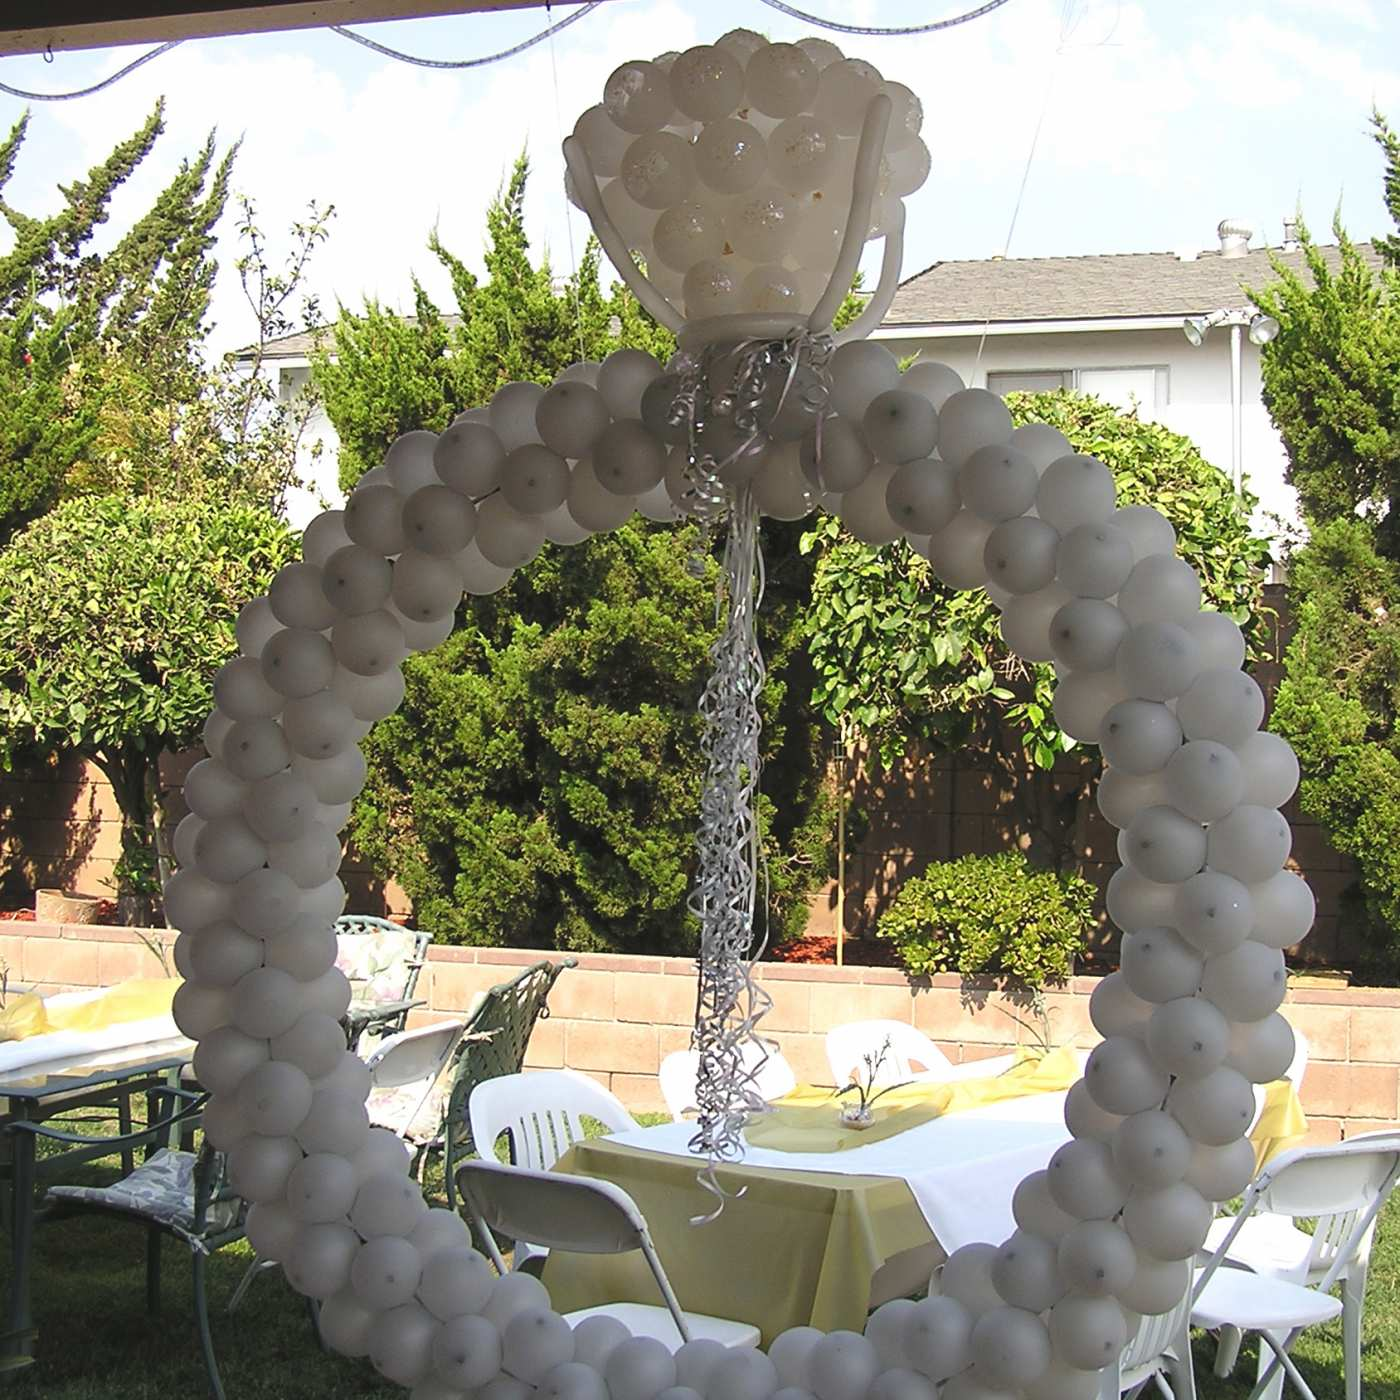 Engagement ring balloon sculpture